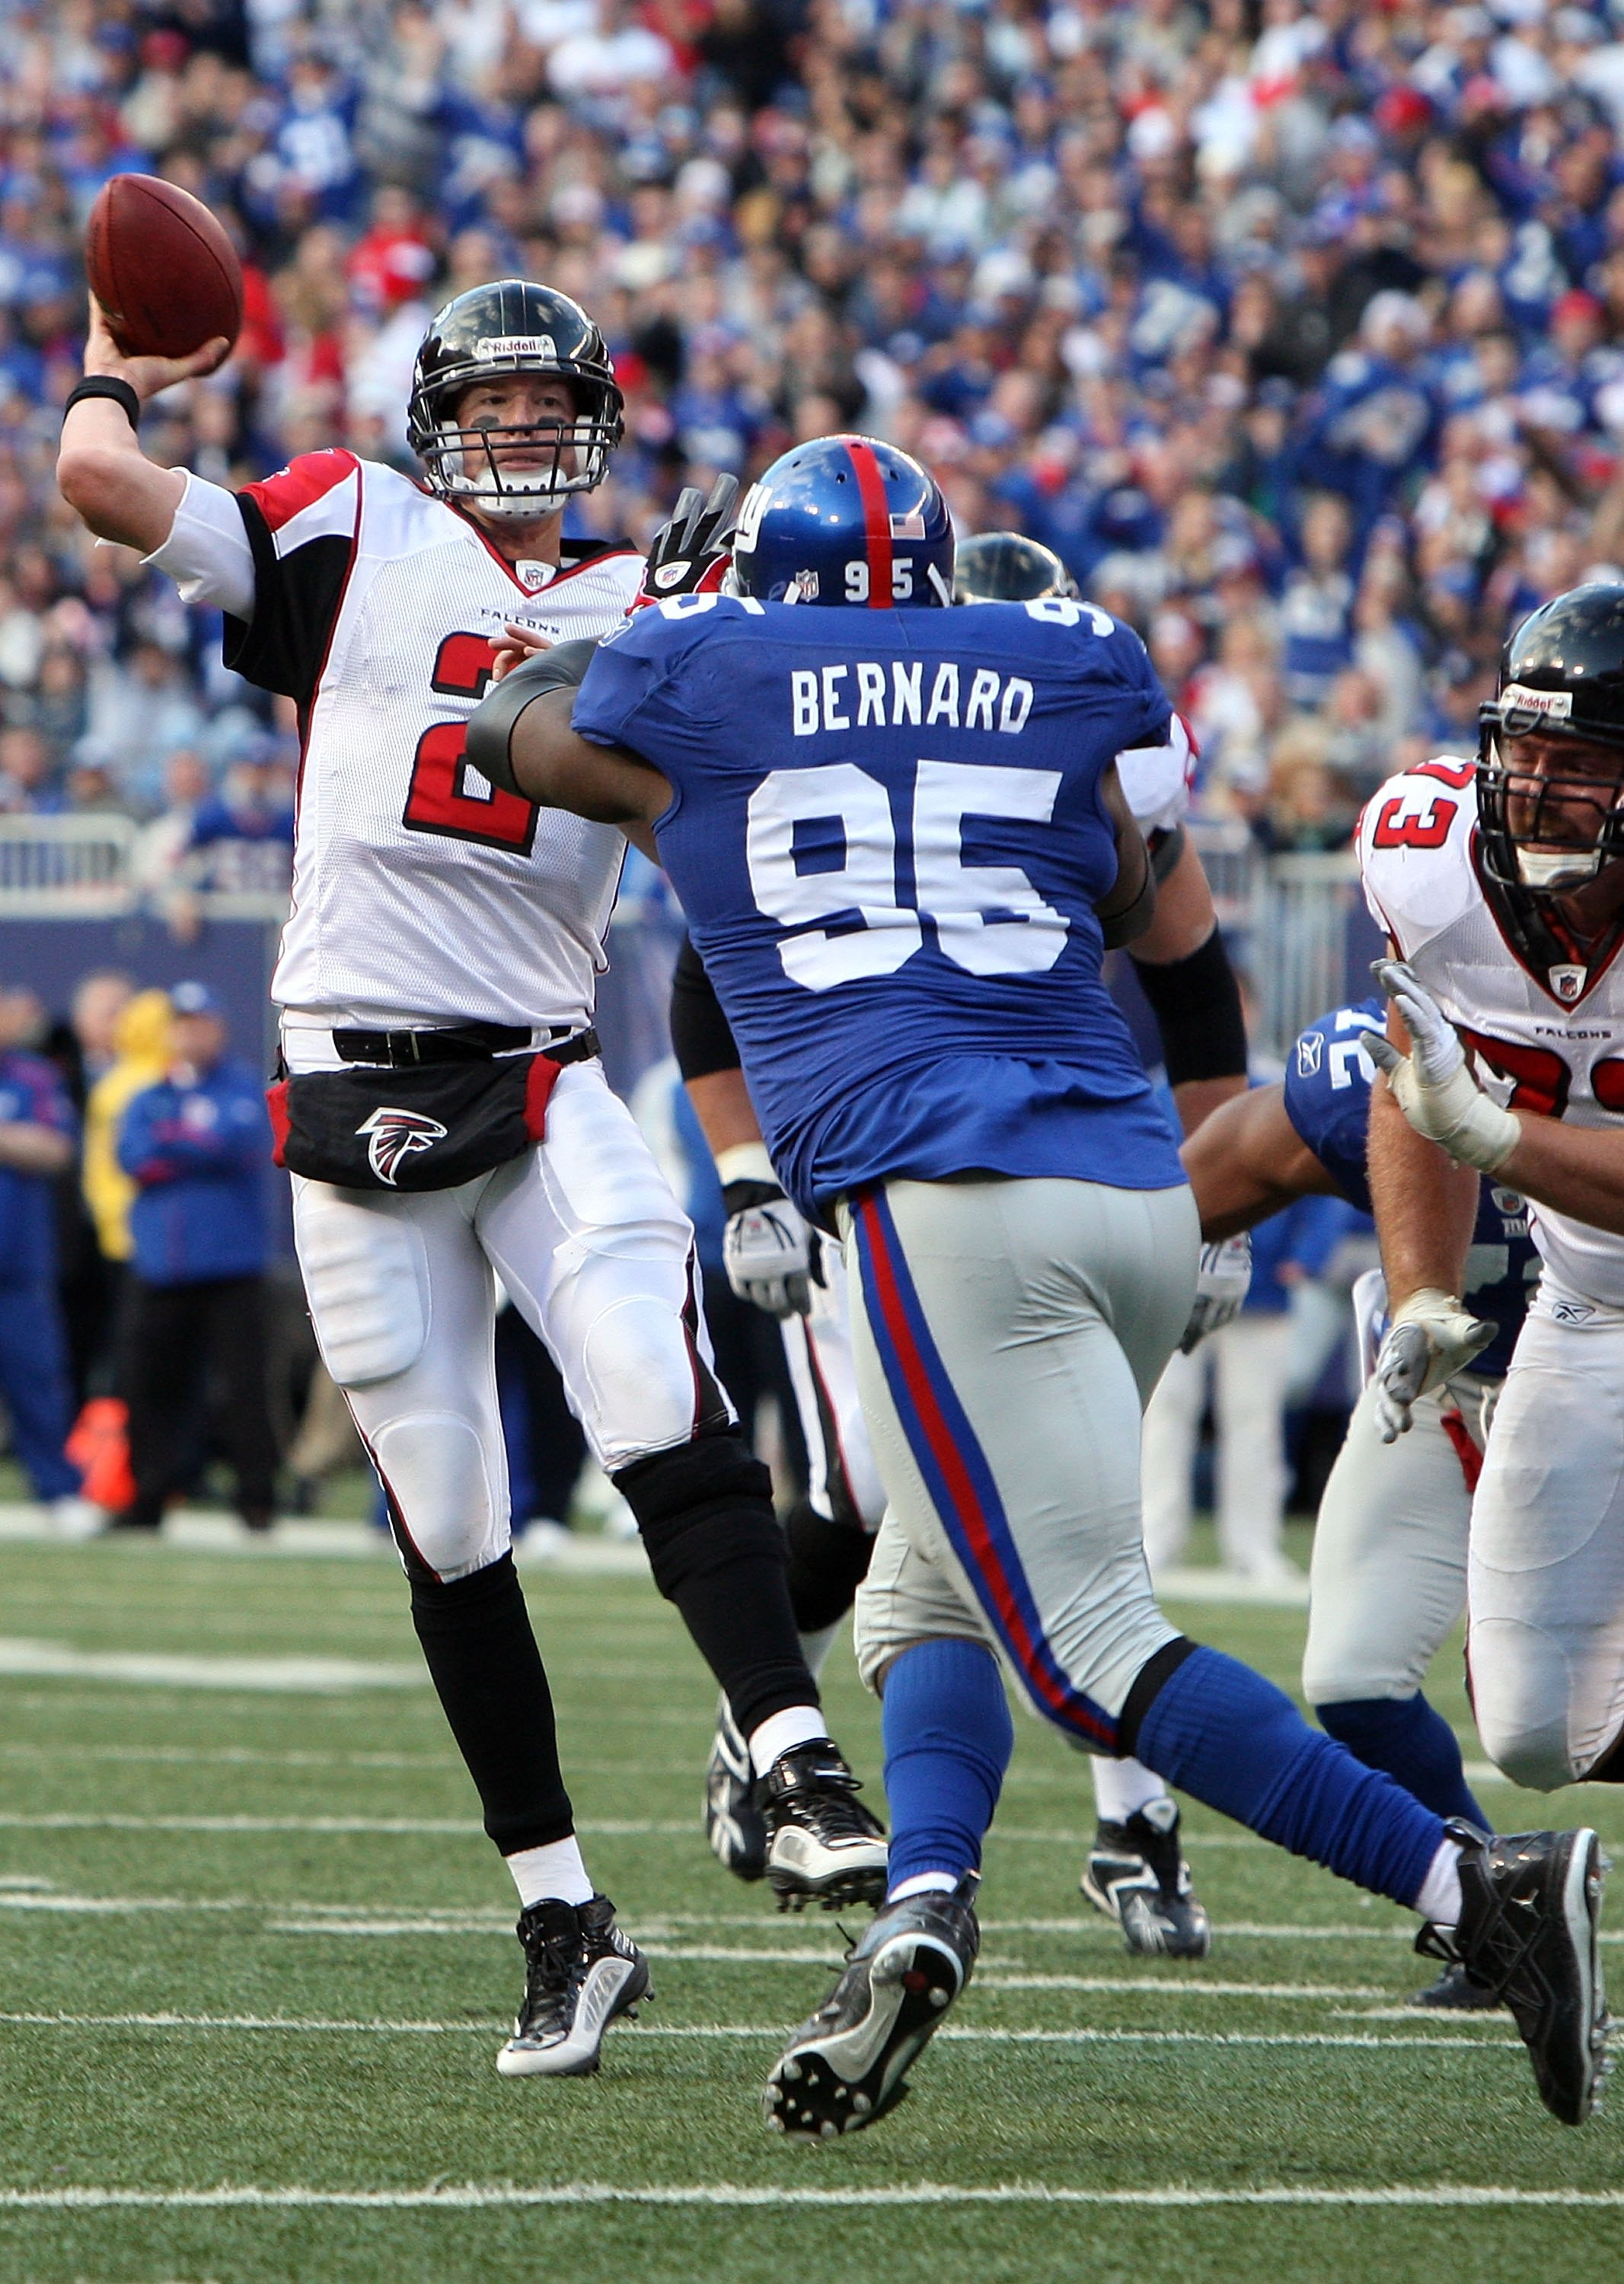 EAST RUTHERFORD, NJ - NOVEMBER 22:  Matt Ryan #2 of the Atlanta Falcons throws a pass under pressure from Rocky Bernard #95 of the New York Giants on November 22, 2009 at Giants Stadium in East Rutherford, New Jersey. The Giants defeated the Falcons 34-31